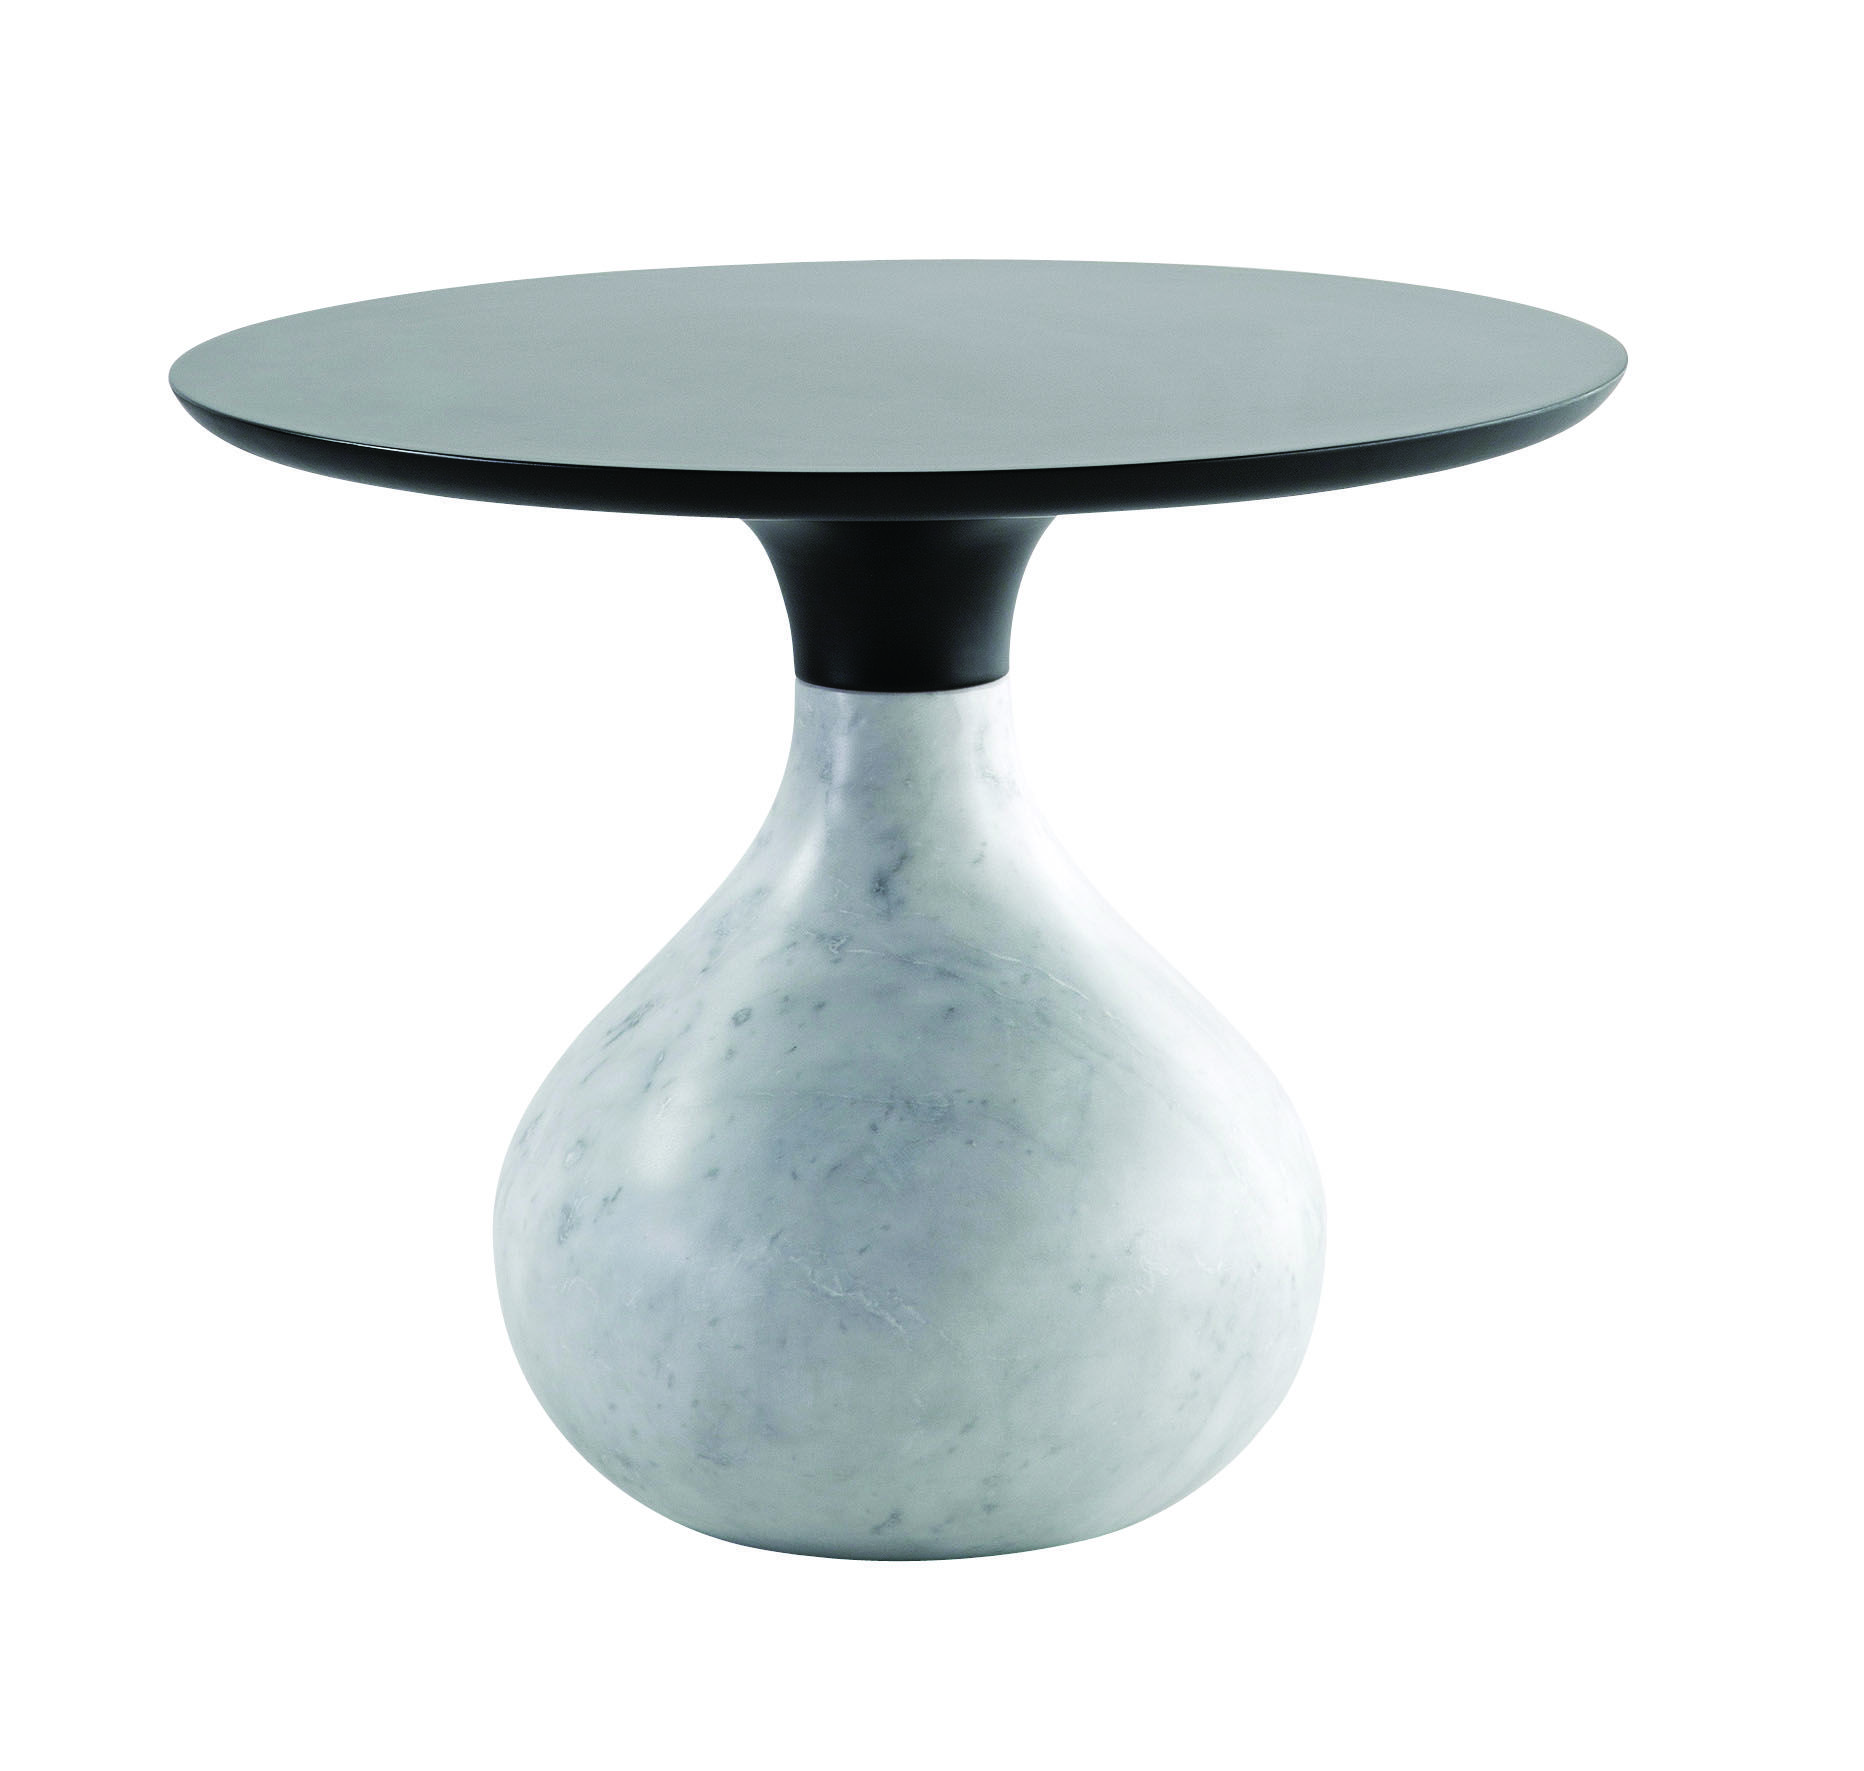 Roche Bobois Aqua Dining Table Designed By Fabrice Berrux Manufactured In Europe Rochebobois Frenchartdevivre Dining Table Dining Table Design Table